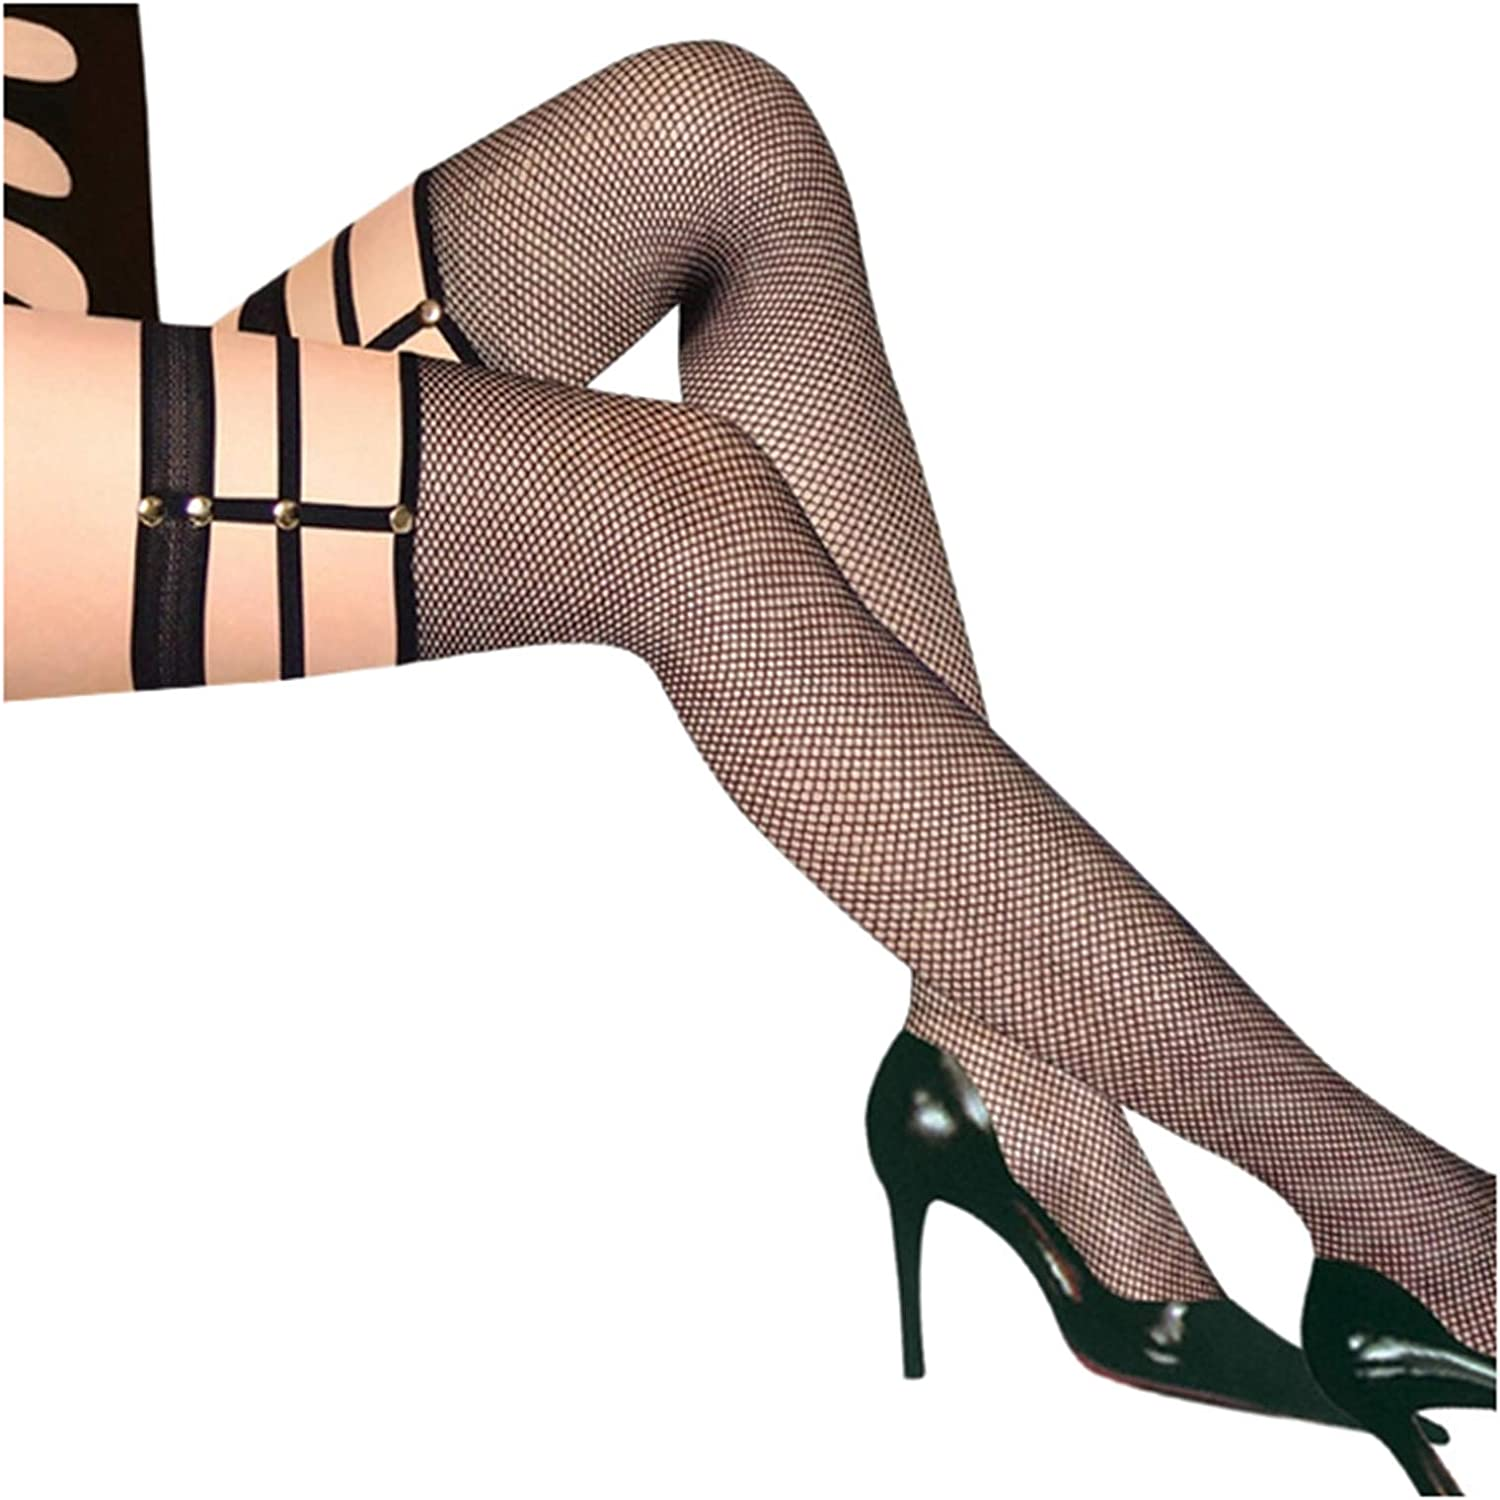 aliveGOT Lace Fishnet Stockings Sexy Tights High Pantyhose, Glitter Diamond Hollow Out Mesh Stockings for Women